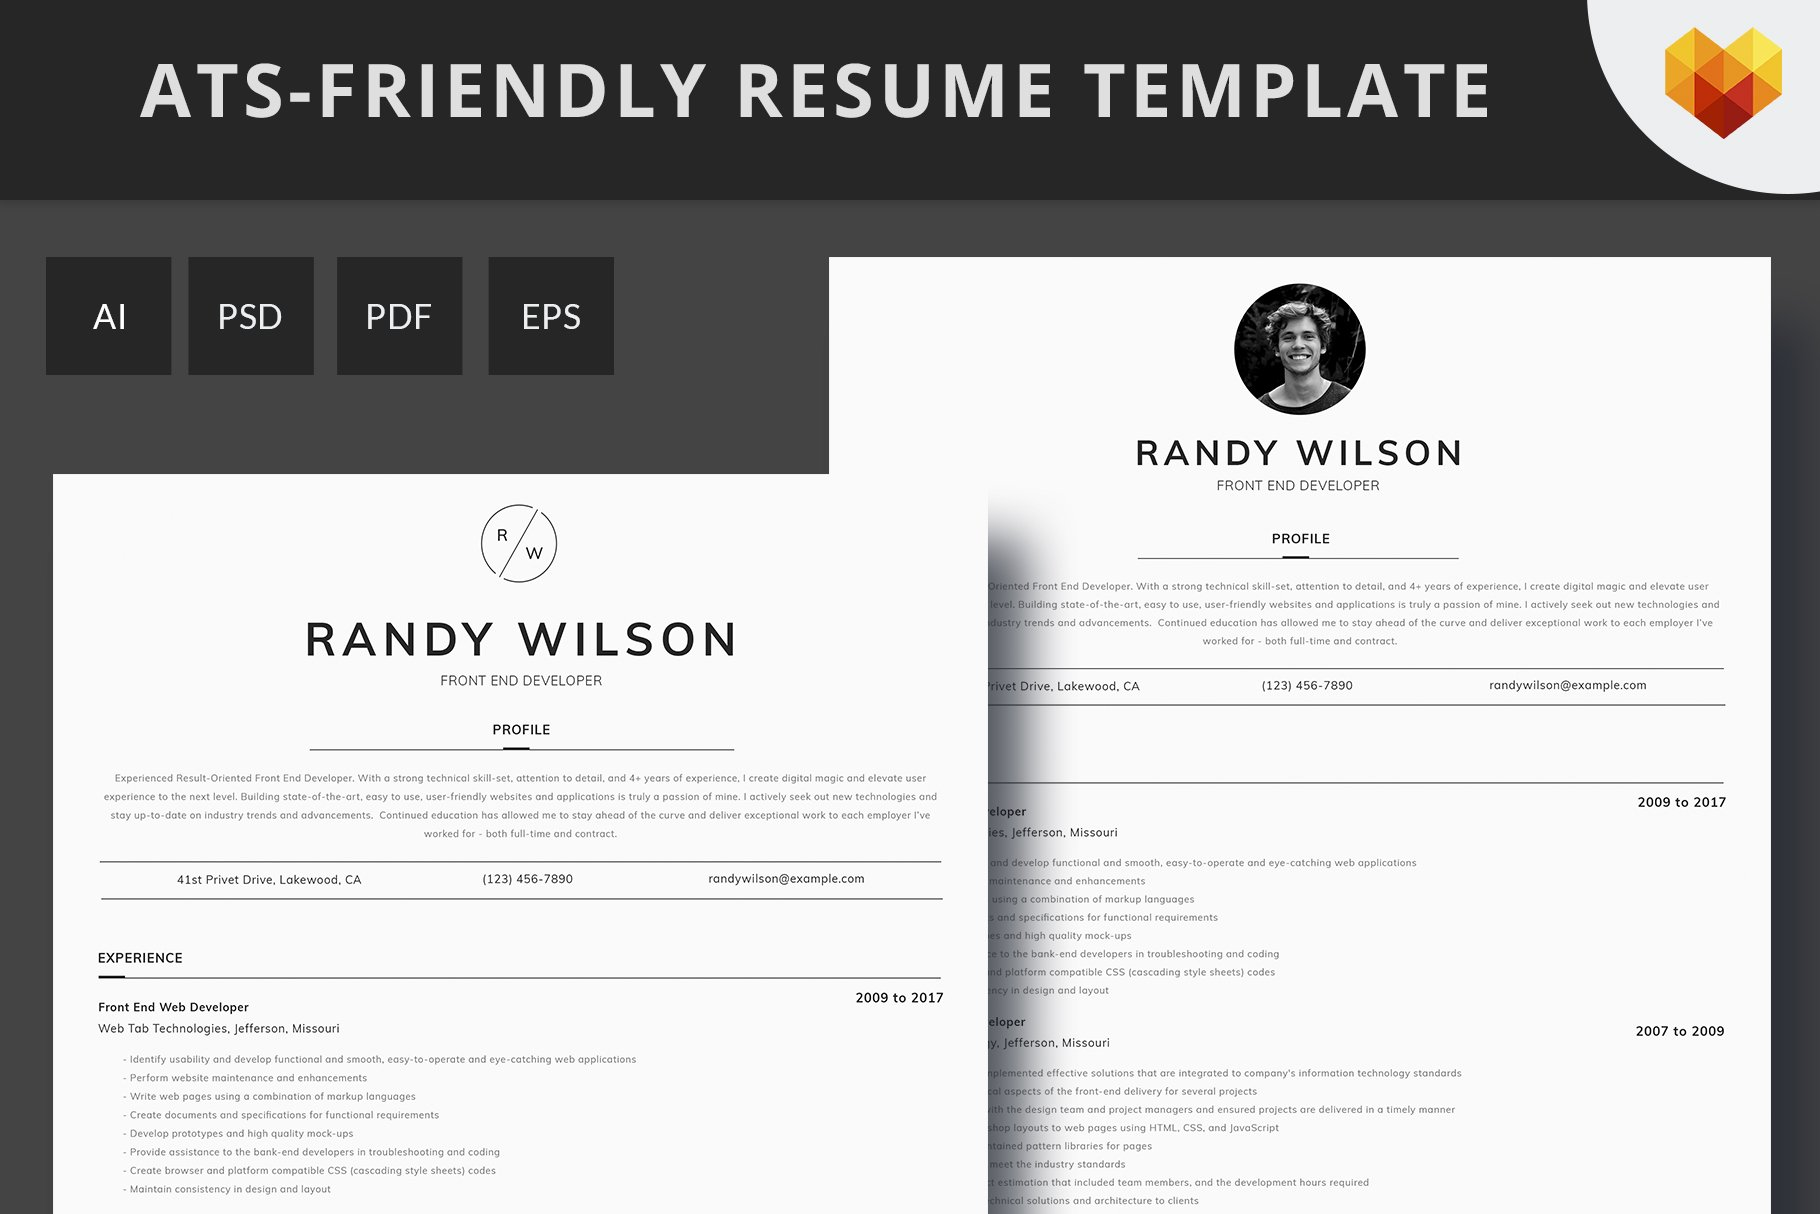 Free Ats Friendly Resume Templates from images.creativemarket.com